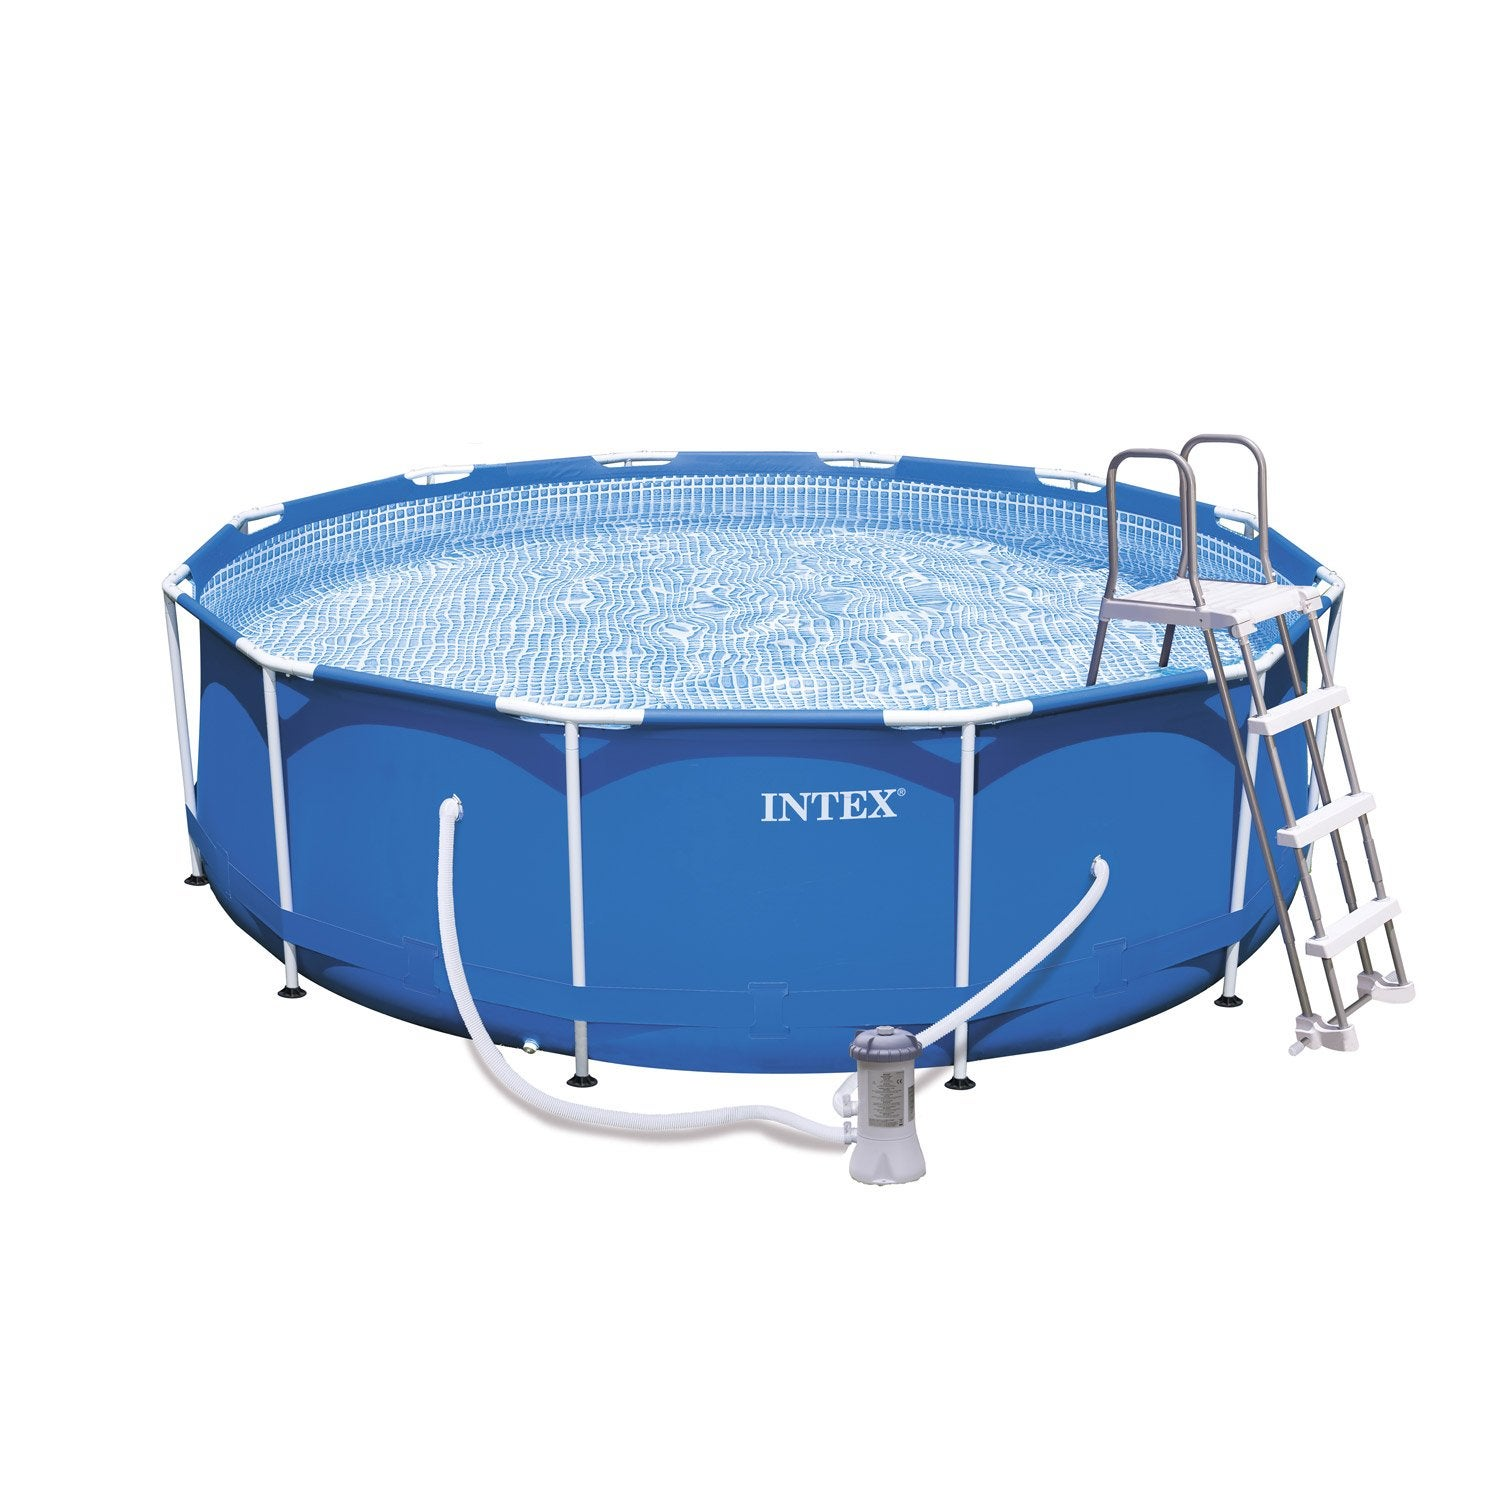 Piscine hors sol autoportante tubulaire m tal frame intex for Rechauffeur piscine hors sol intex